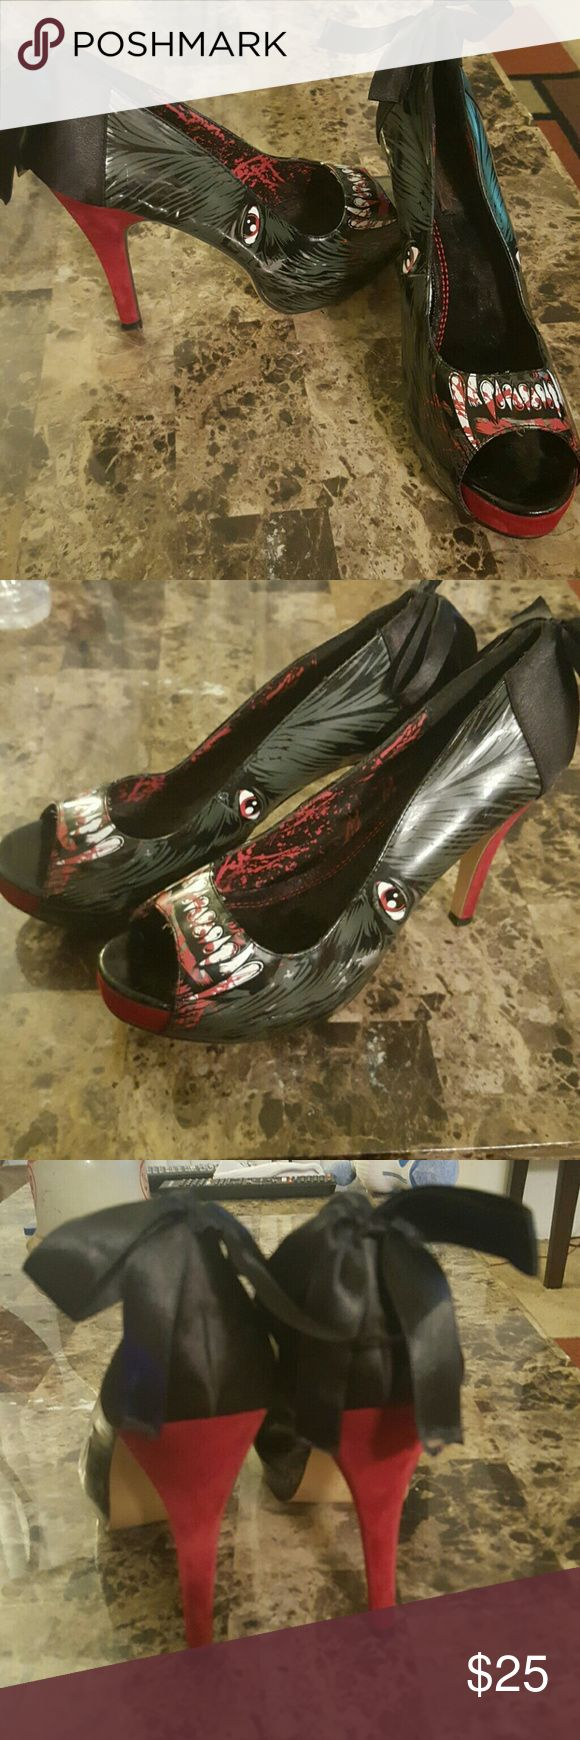 Iron fist were wolf heels beautiful Worn a few times.  No box for them anymore. Sorry. Iron Fist Shoes Heels